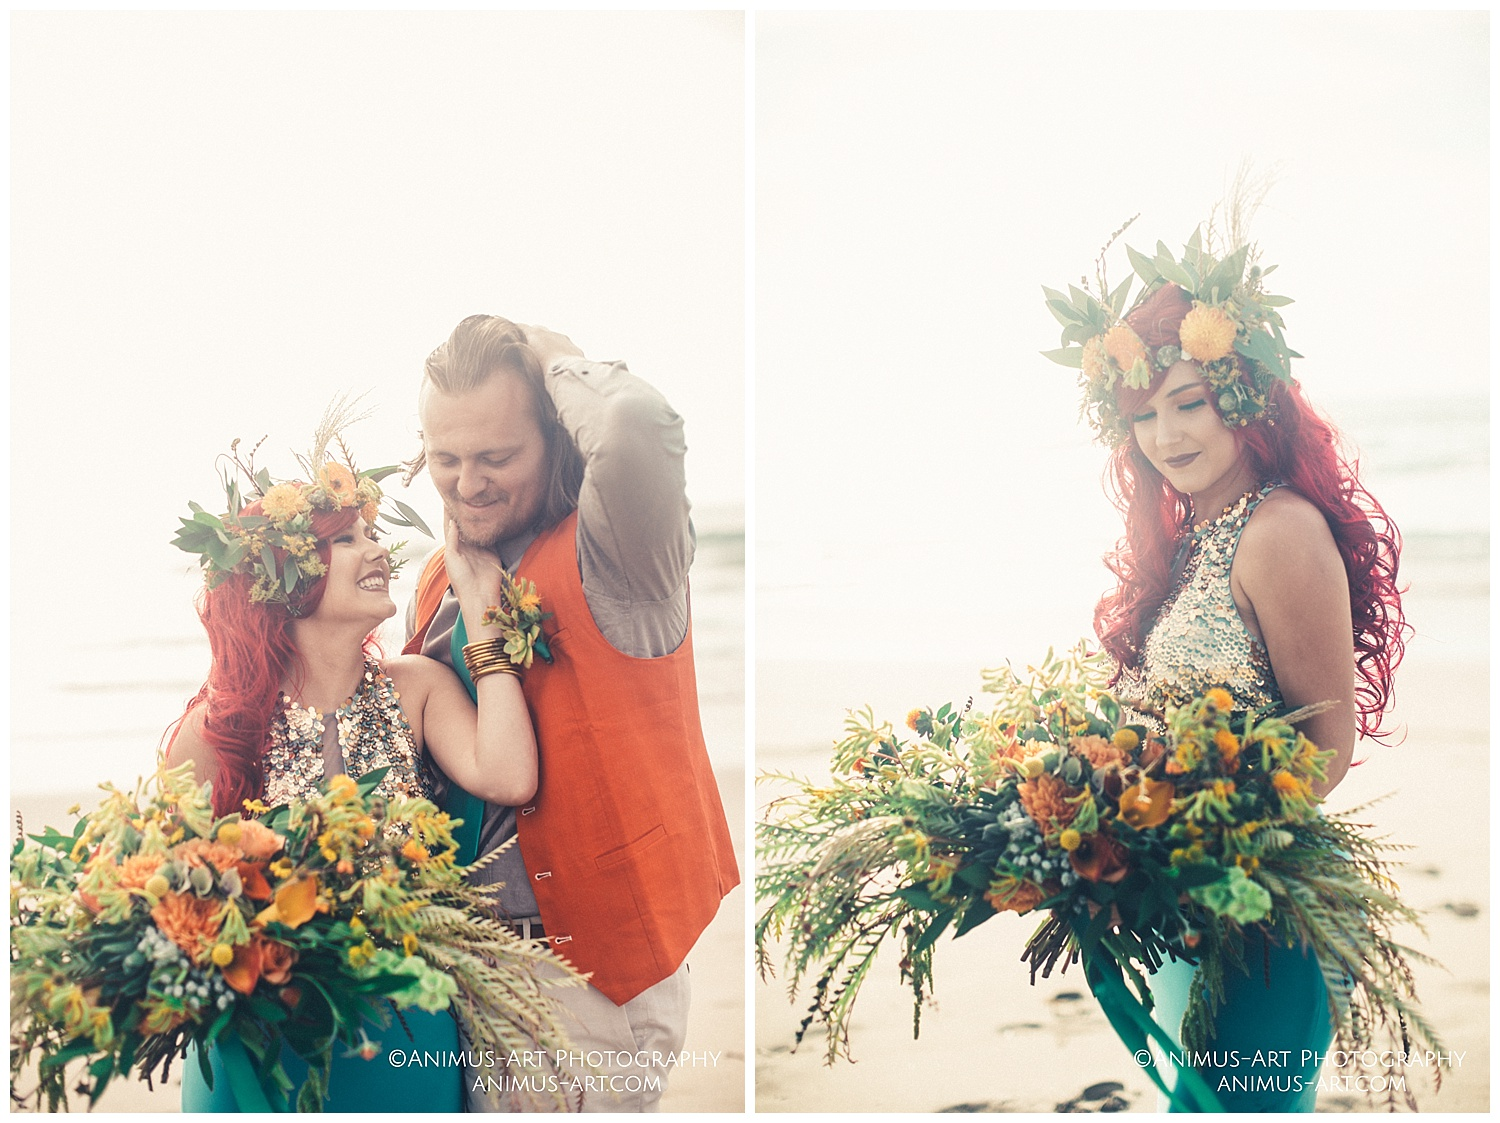 Aquaman and Mera pose at beach with oversized bouquet.jpg